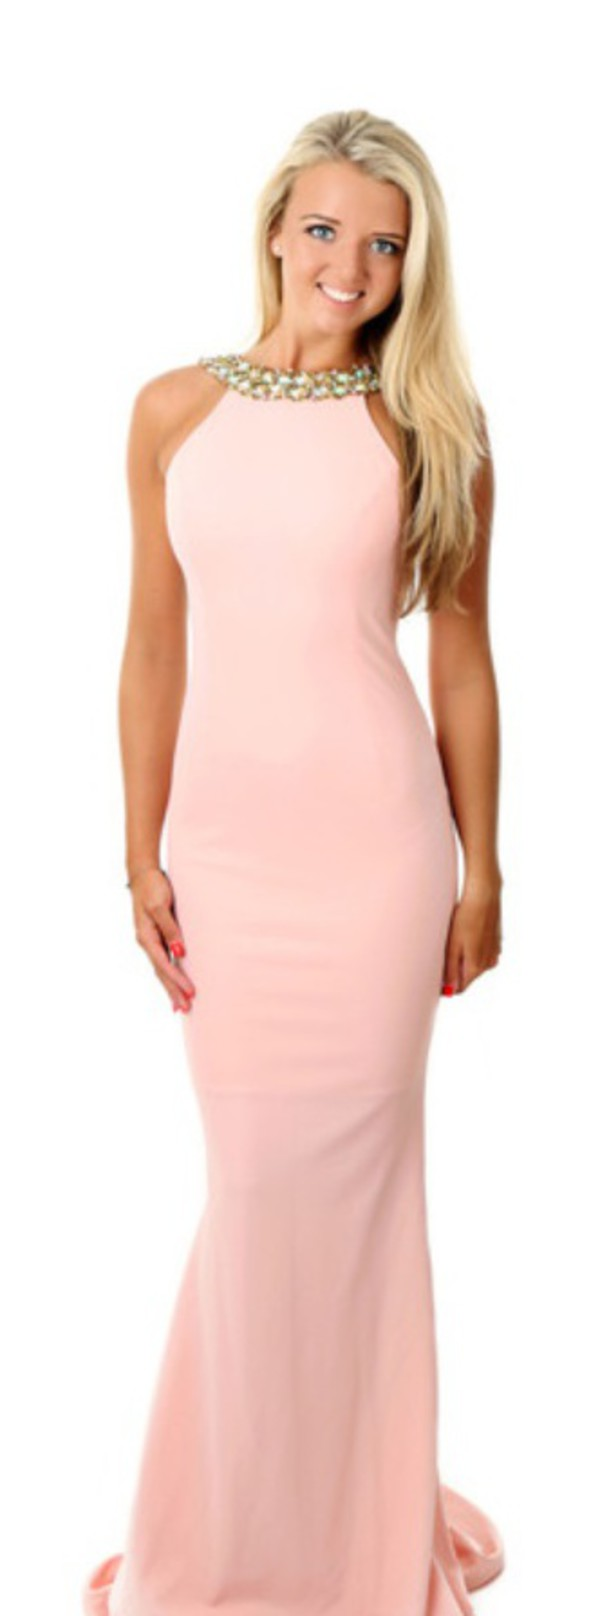 Dorable Long Tight Dresses For Prom Photo - Wedding Dress Ideas ...